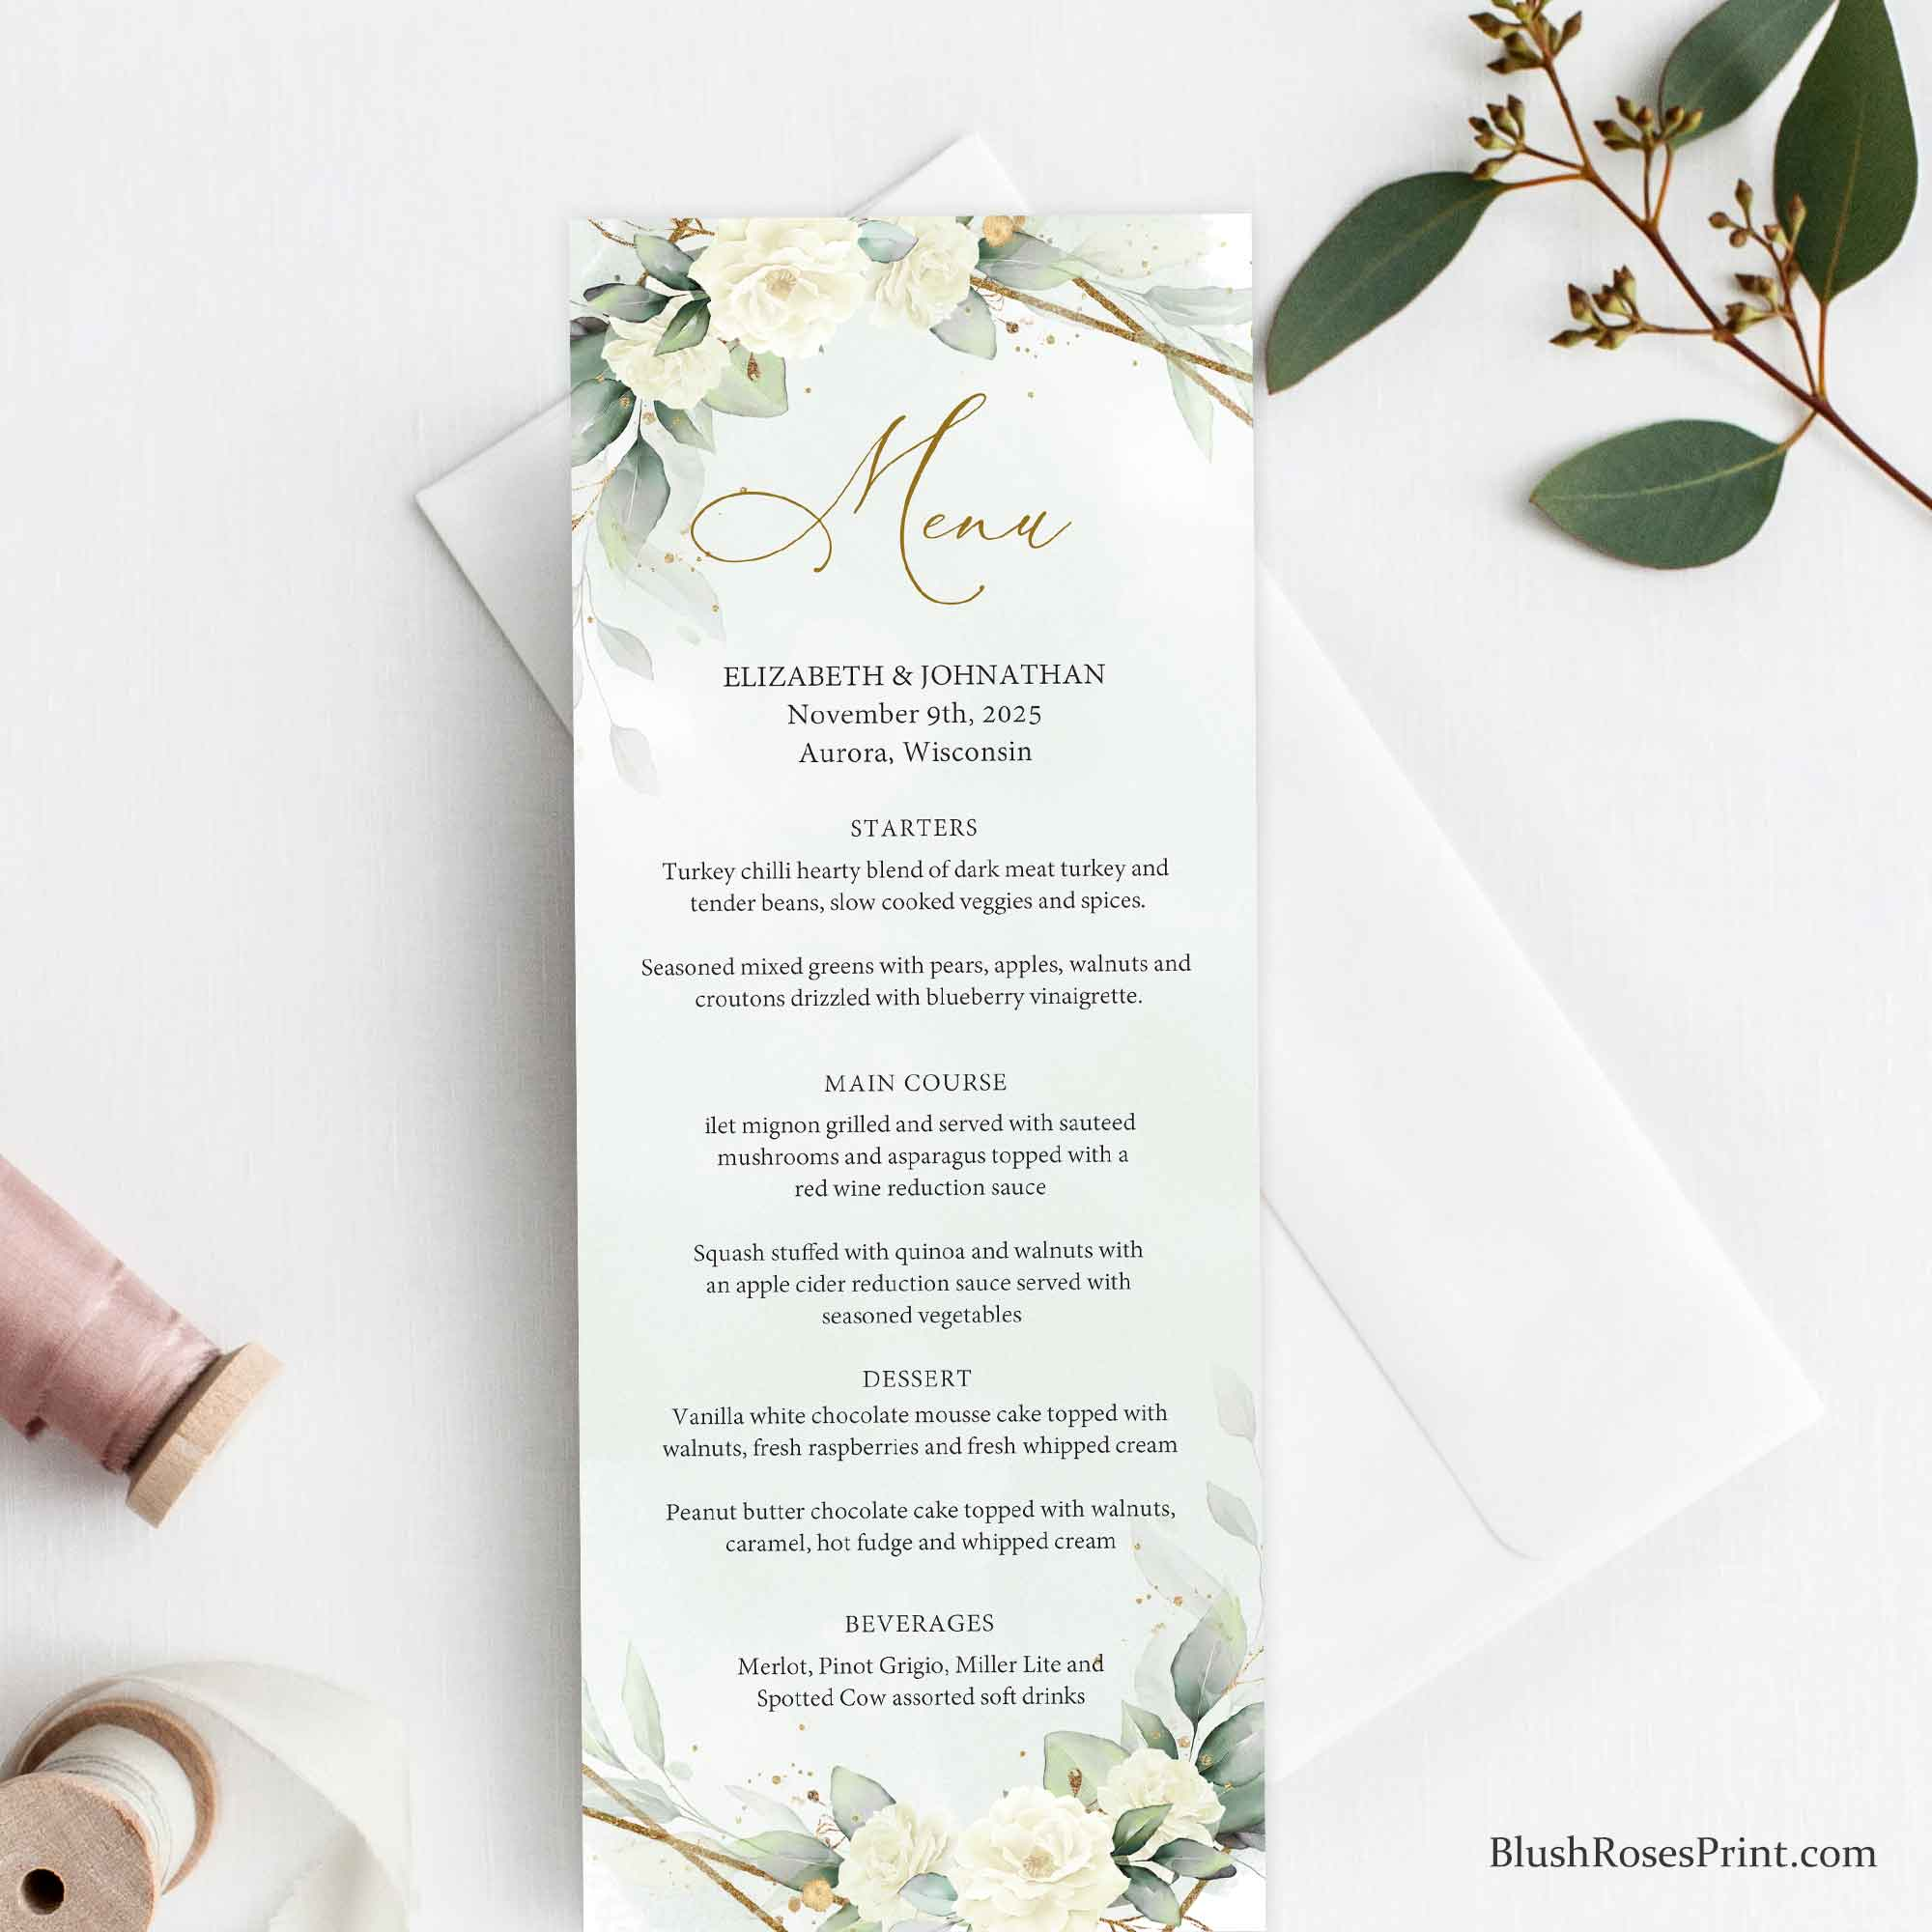 SERY - Greenery and White Roses Menu Template, DIGITAL or PRINTED Wedding Menu, Editable Menu, Gold Geometric Frame, Menu for Wedding Diy